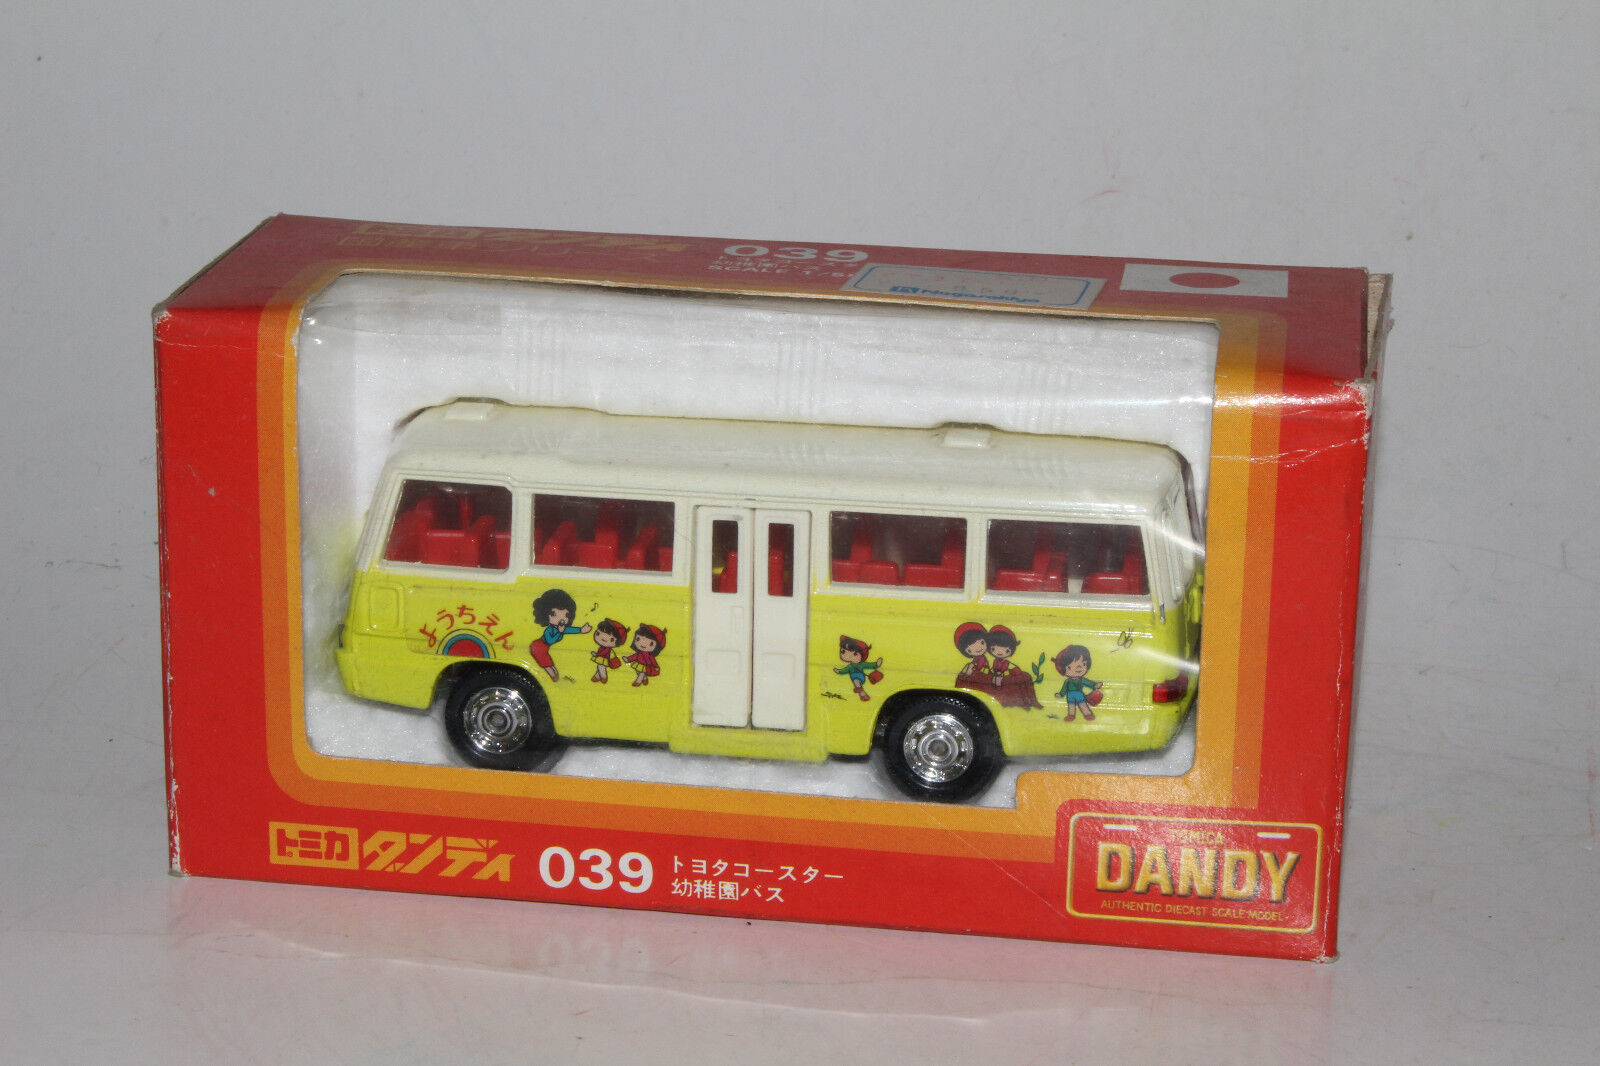 TOMY TOMICA DANDY TOYOTA COASTER SCHOOL BUS, EXCELLENT, BOXED